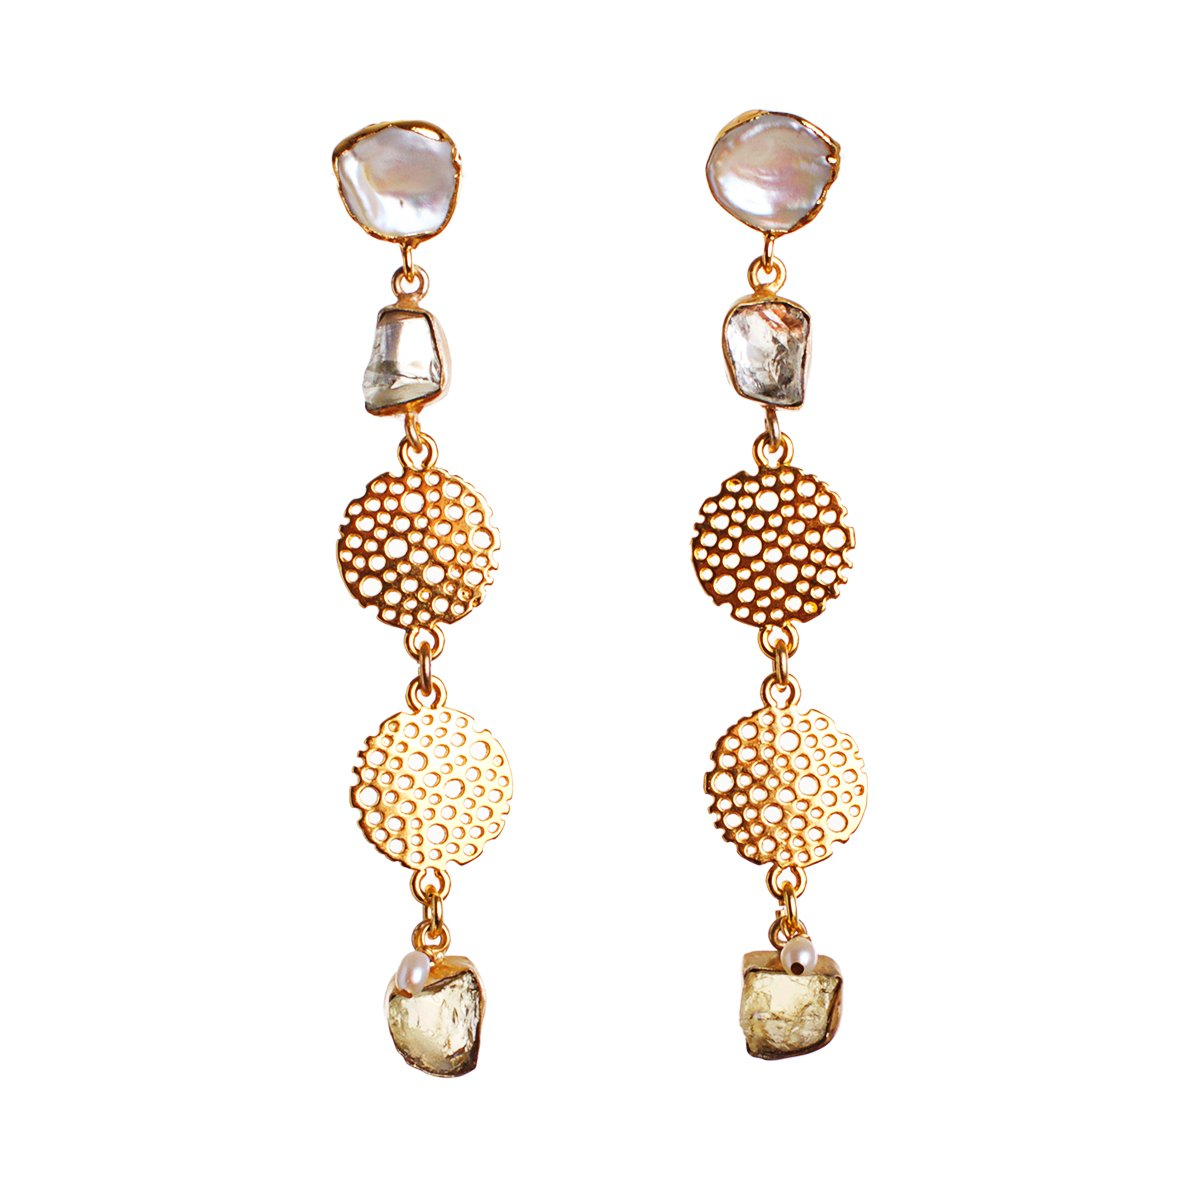 The Delicous Aquamarine & Pearl Tide Statement Earrings